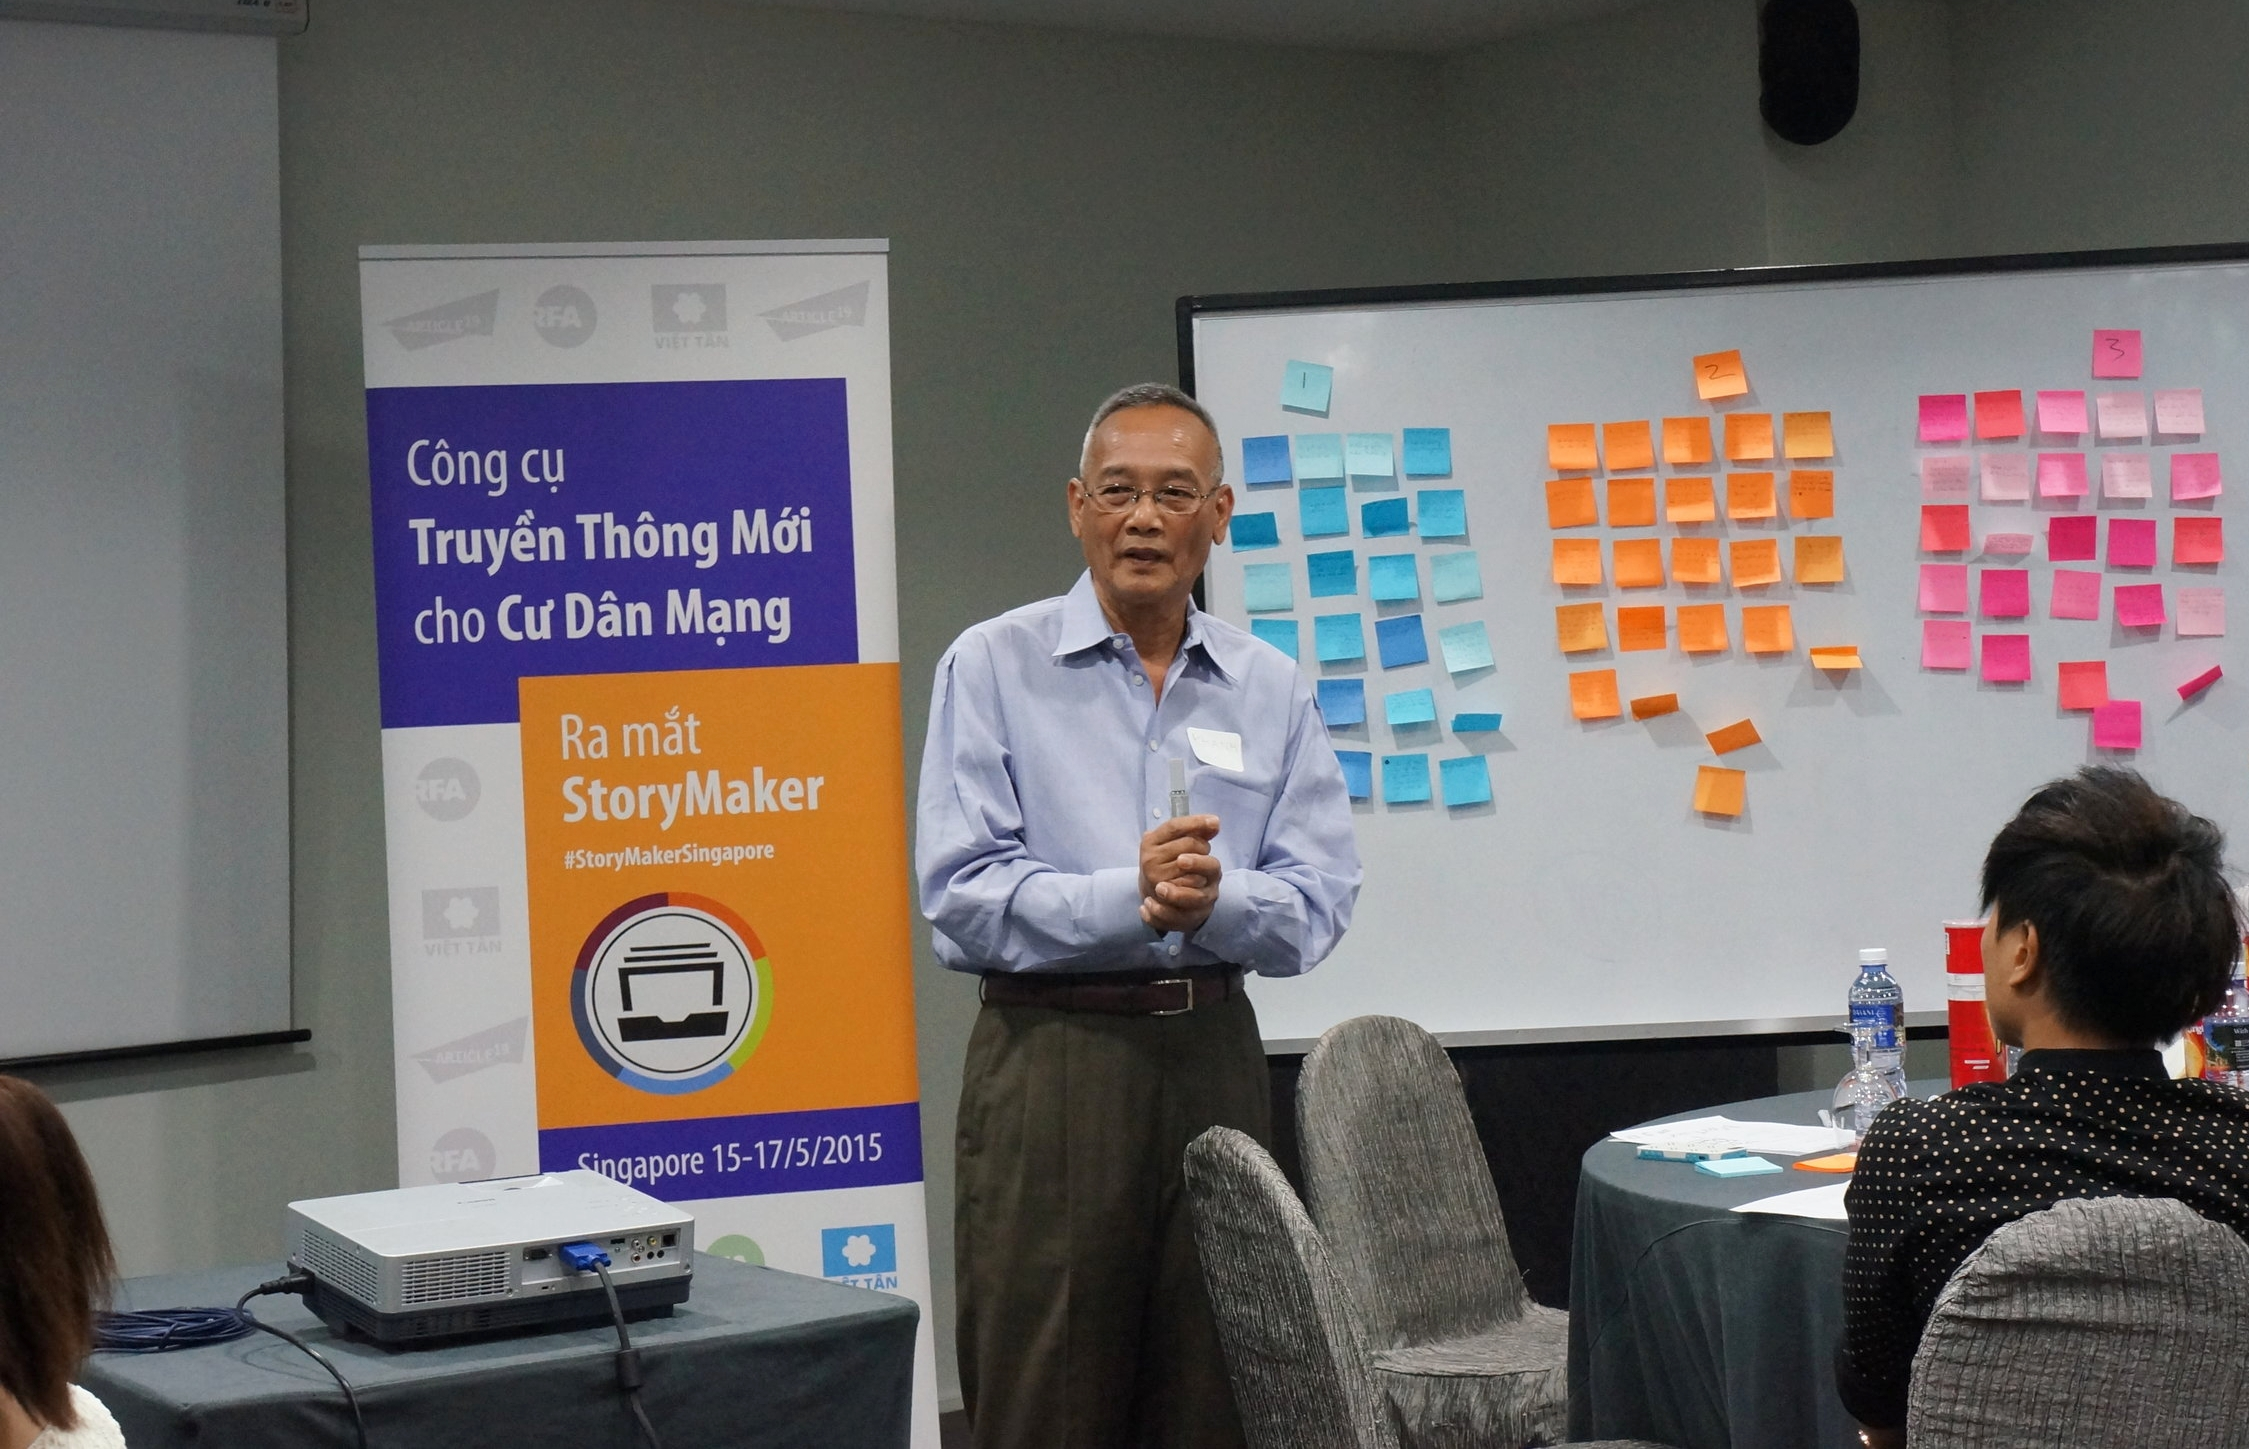 Khanh Nguyễn, a trainer from Radio Free Asia, says citizen journalists are essential to RFA's reporting. (Photo: Loa)